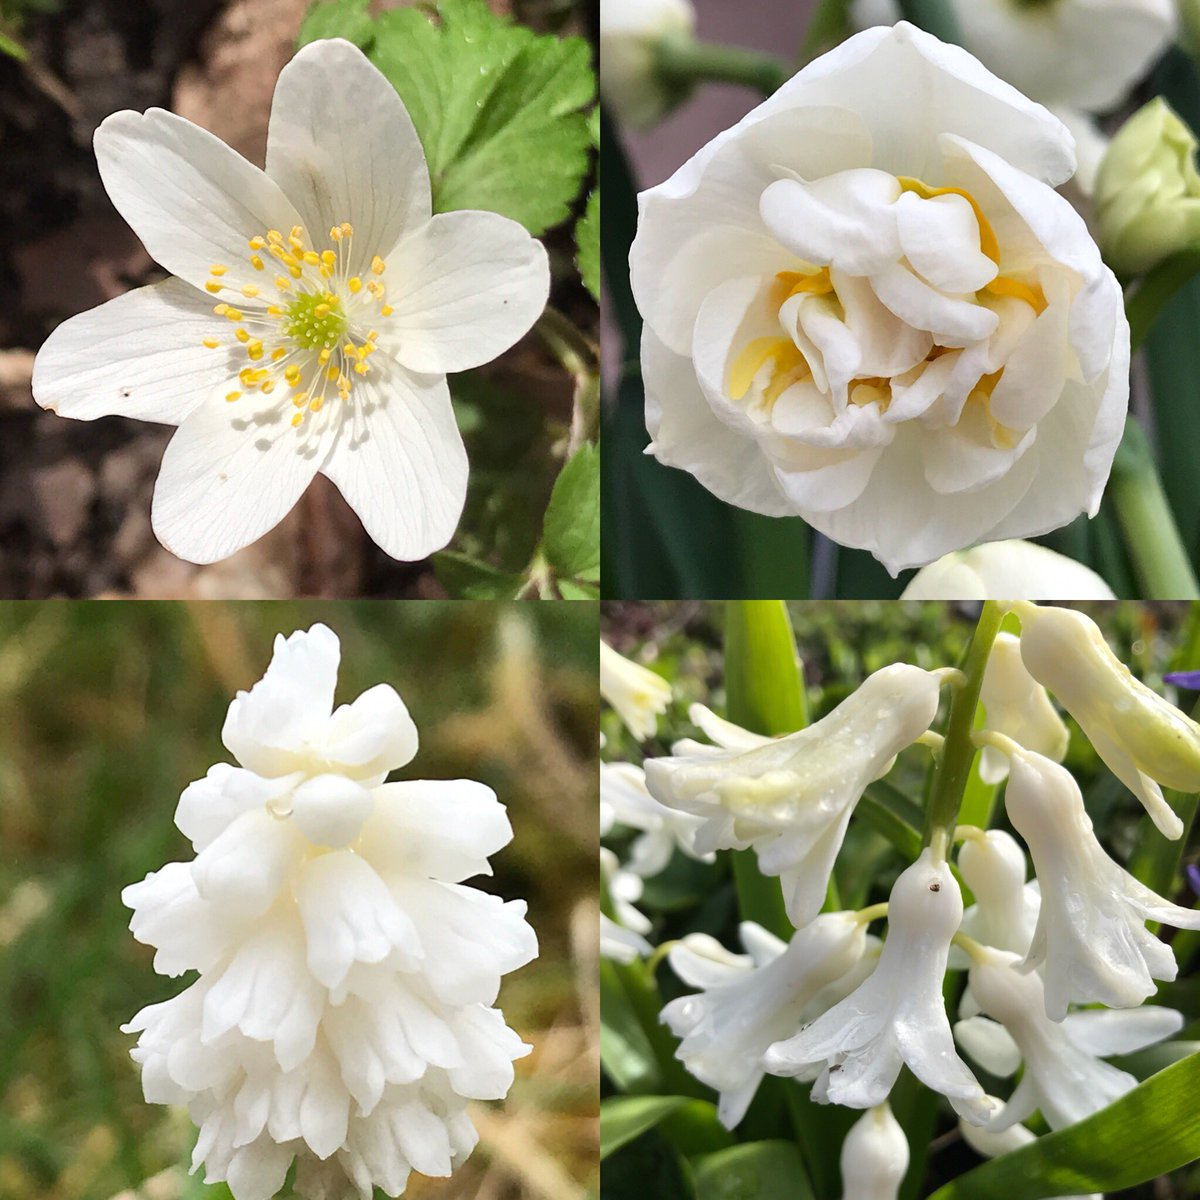 Louise midgley on twitter you cant beat pure white flowers often louise midgley on twitter you cant beat pure white flowers often scented and and easily seen from a distance flowers spring mightylinksfo